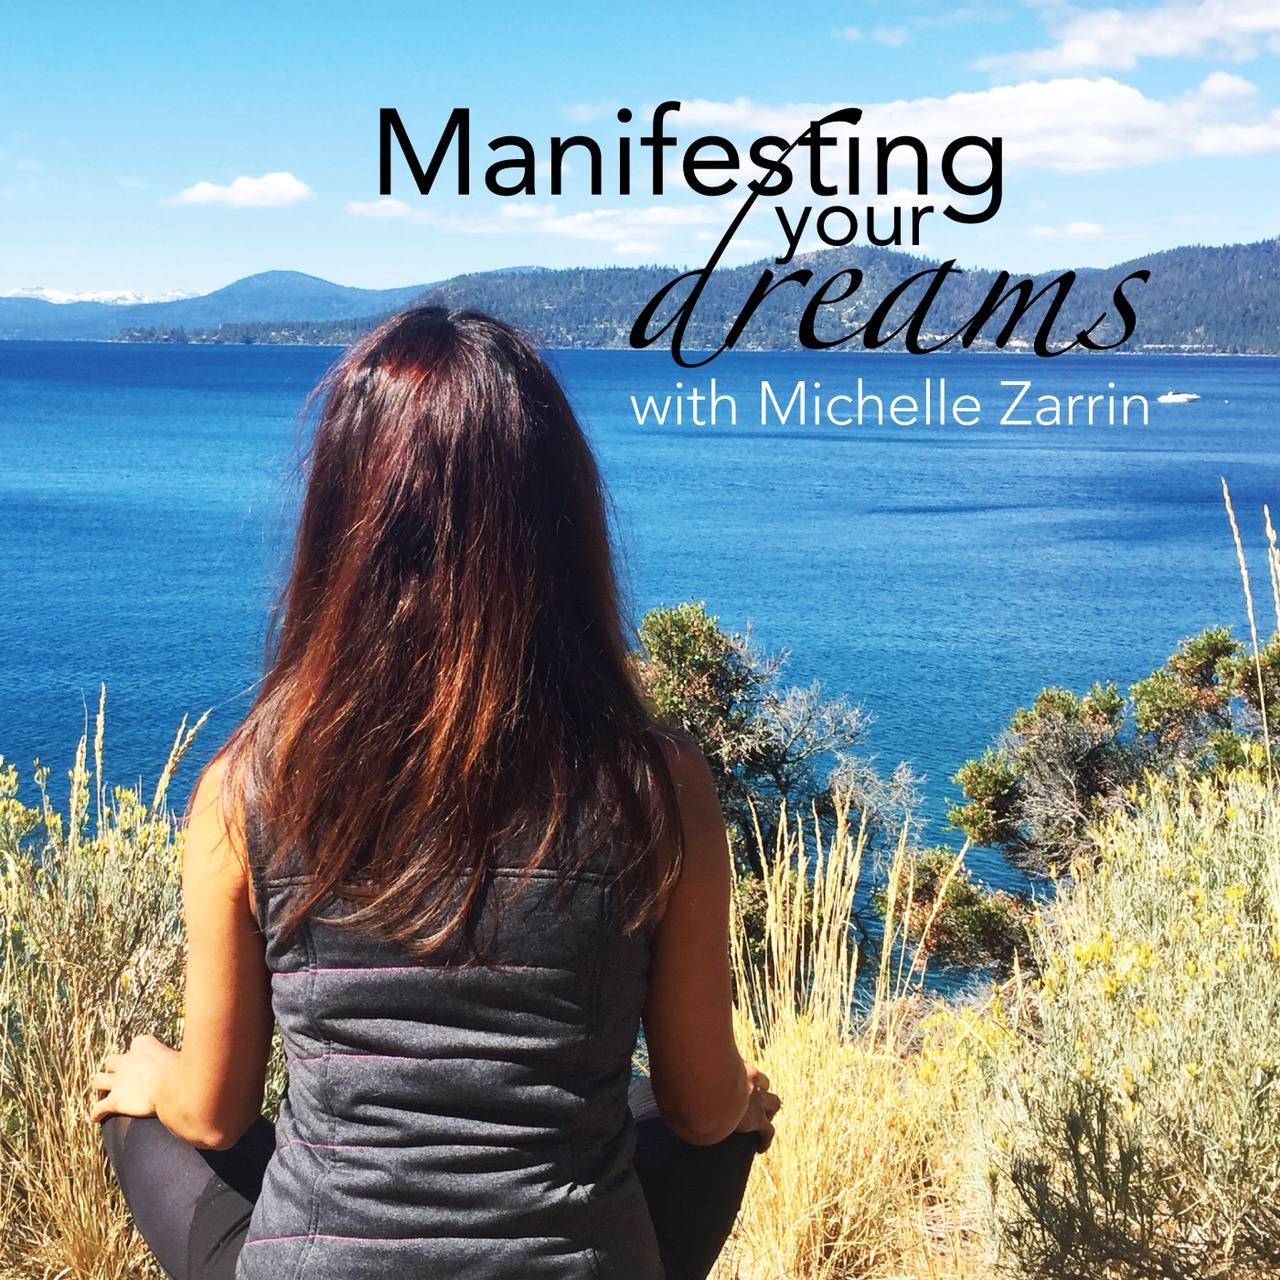 Hello Newsletter Family!  We are releasing a new meditation titled  Manifesting Your Dreams . It is different than the previous meditations, because this is a single meditation, not a series.  The release date of this meditation will be 20th of October, on Podcast. Once Insight Timer releases it as well, I will make the announcement on social media. You can find links to my social media accounts at the bottom of this newsletter.  There are different angles to take when it comes to manifesting our dreams. In this meditation, I walk you through one very important angle: Understanding the importance of your thoughts plus your feelings when desiring an outcome.  Our mind loves to project fear and doubt when we think about our dreams. However, these only become a hindrance and block us from moving forward.  In this meditation, we work through breaking free from these negative states of mind. And then  feel  the outcome/situation/person we'd like to become.  Thoughts and feelings are formless. And we need to lay a good foundation with the formless before life will give way to the form.  Formless always precedes form. Everything is an idea before it becomes tangible. And the energy we give to the formless (thoughts and feelings) is so crucial.  I suggest doing this meditation repeatedly through time. Because the mind does not adjust right away. Since the mind loves habits, it takes it time to adjust to a new way of being.  Also, in last week's newsletter, I shared a video that is an accompaniment to this meditation. In the video, I present another angle to manifesting our dreams. The link for last week's newsletter is:  http://michellezarrin.com/need-know-creating-life-want/   A note about upcoming meditations: Next month we will be releasing another meditation. That one is single as well, not a series. I have the inspiration for another series. And my goal is to release that series in early 2018.  We also believe this meditation,  Manifesting Your Dreams  could be turned 